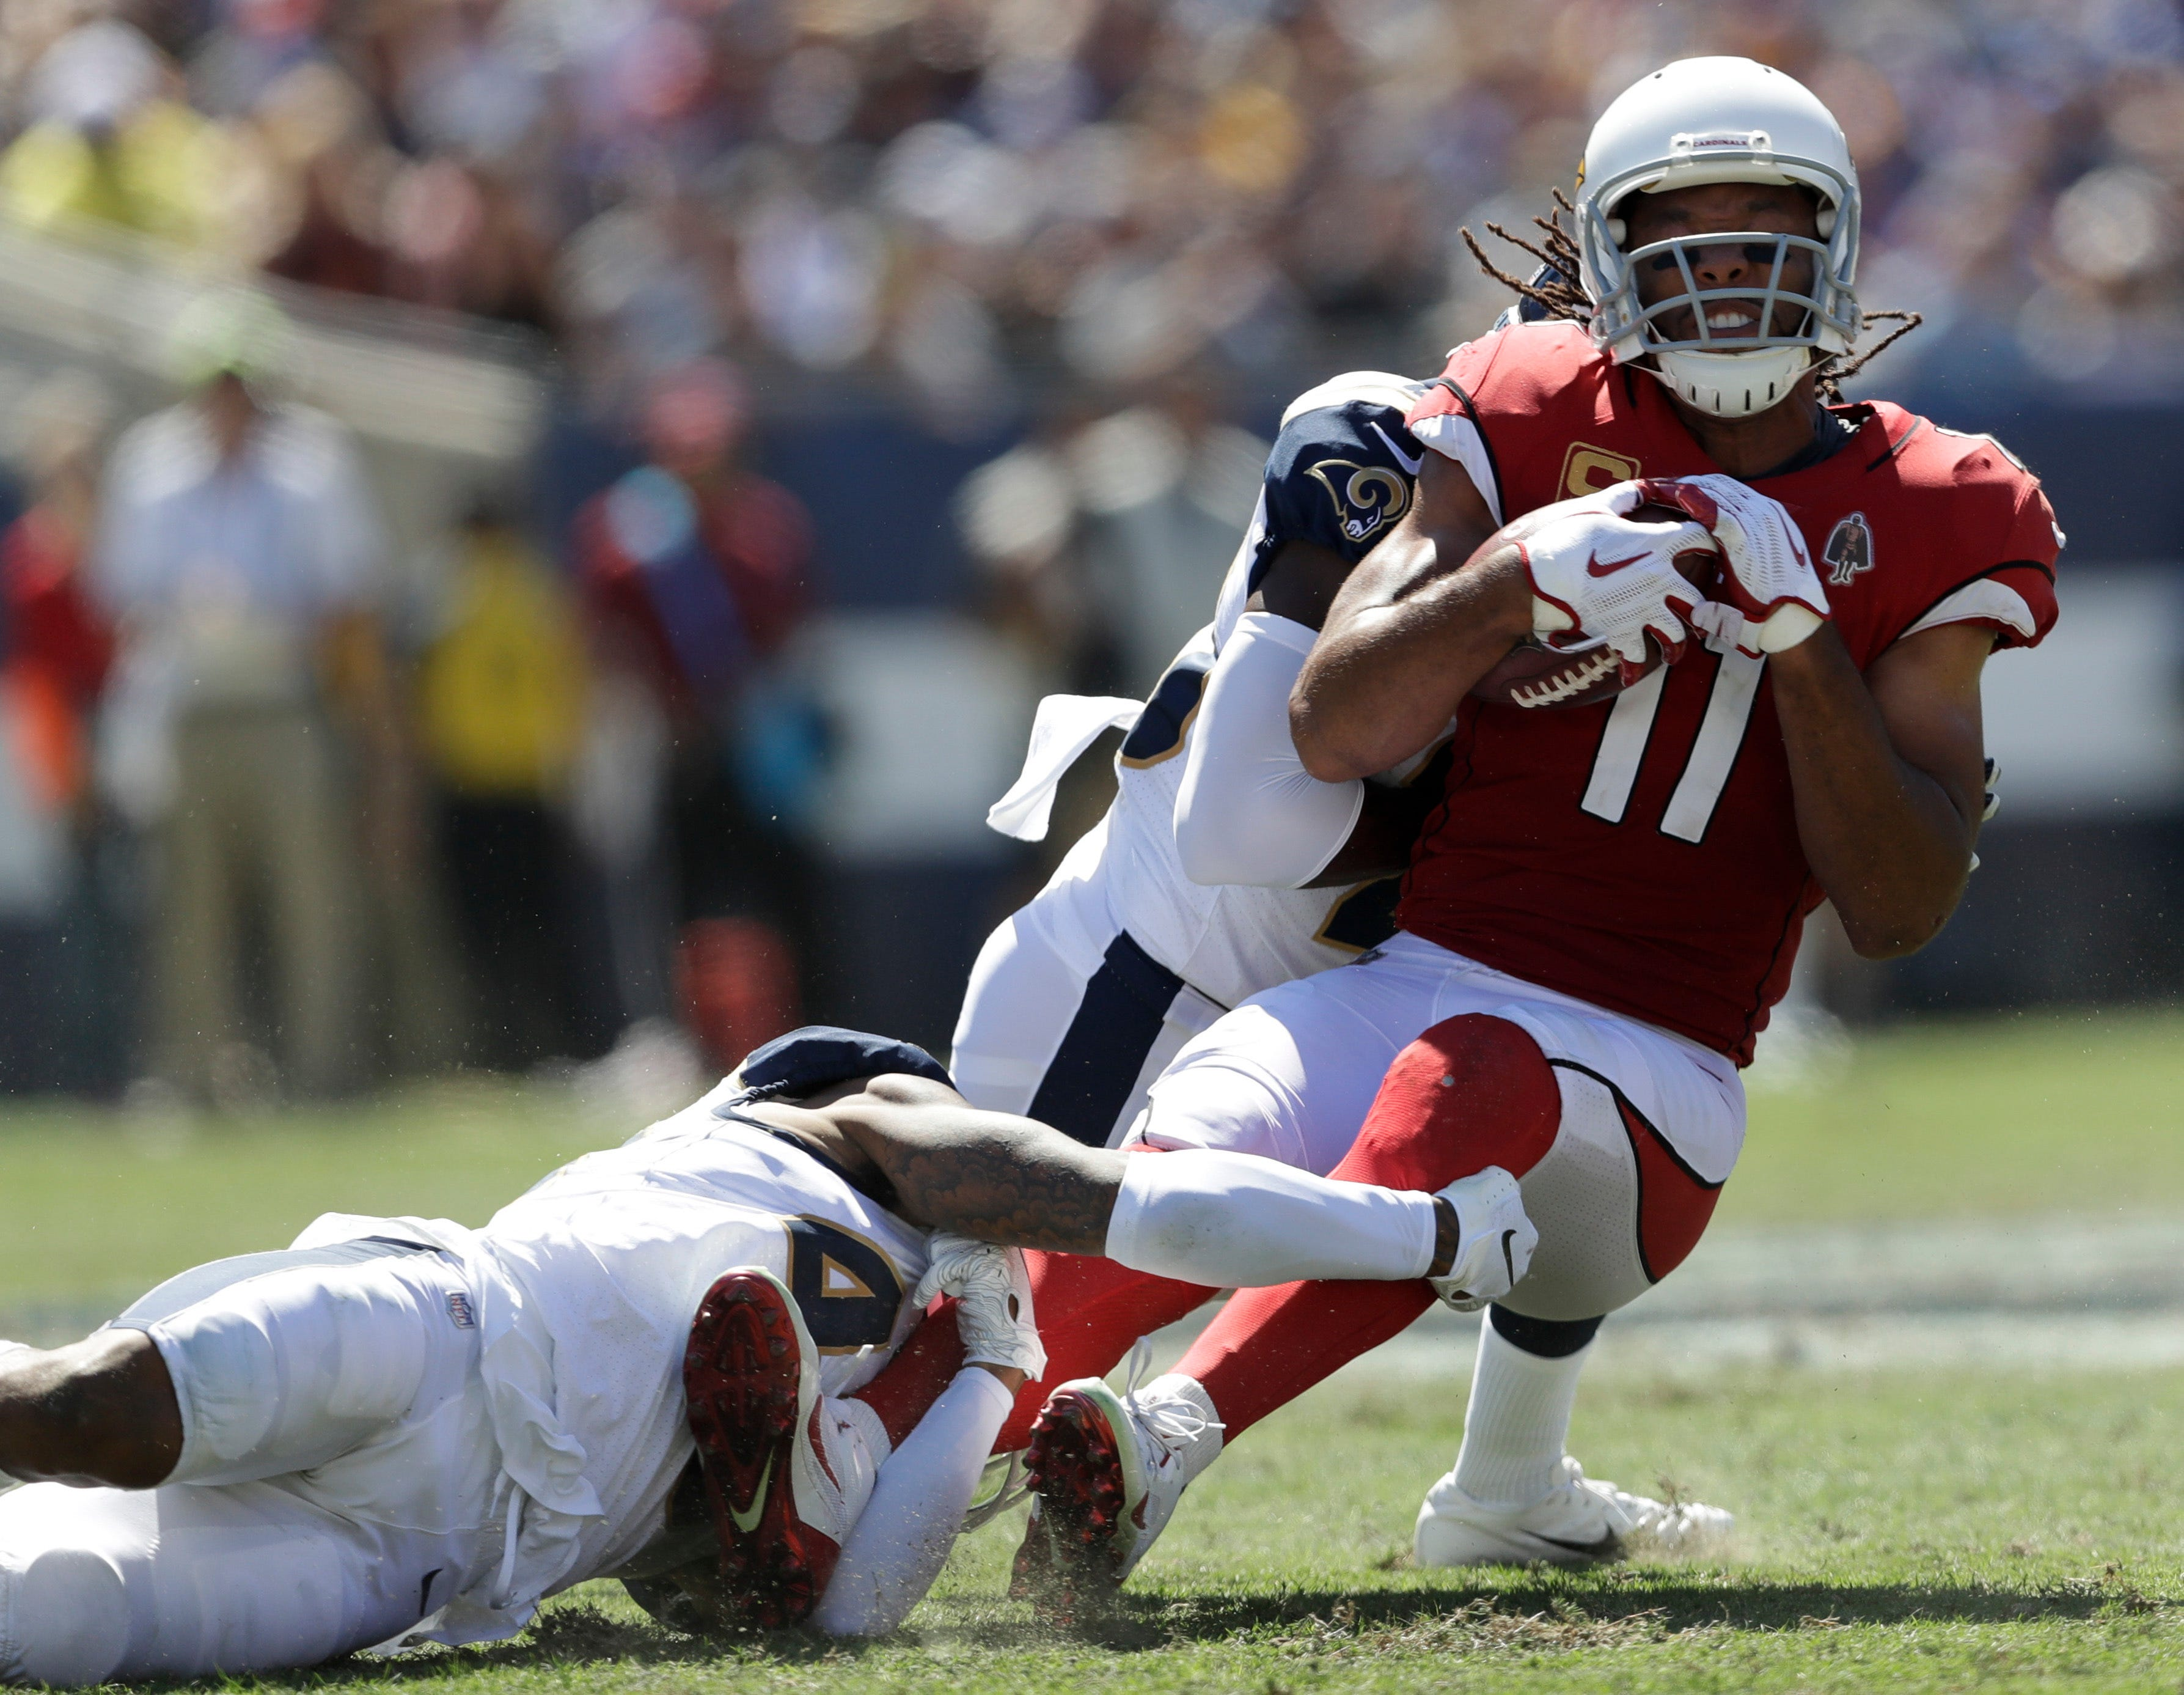 Cardinals offense a mess after scoring 6 points in 2 games